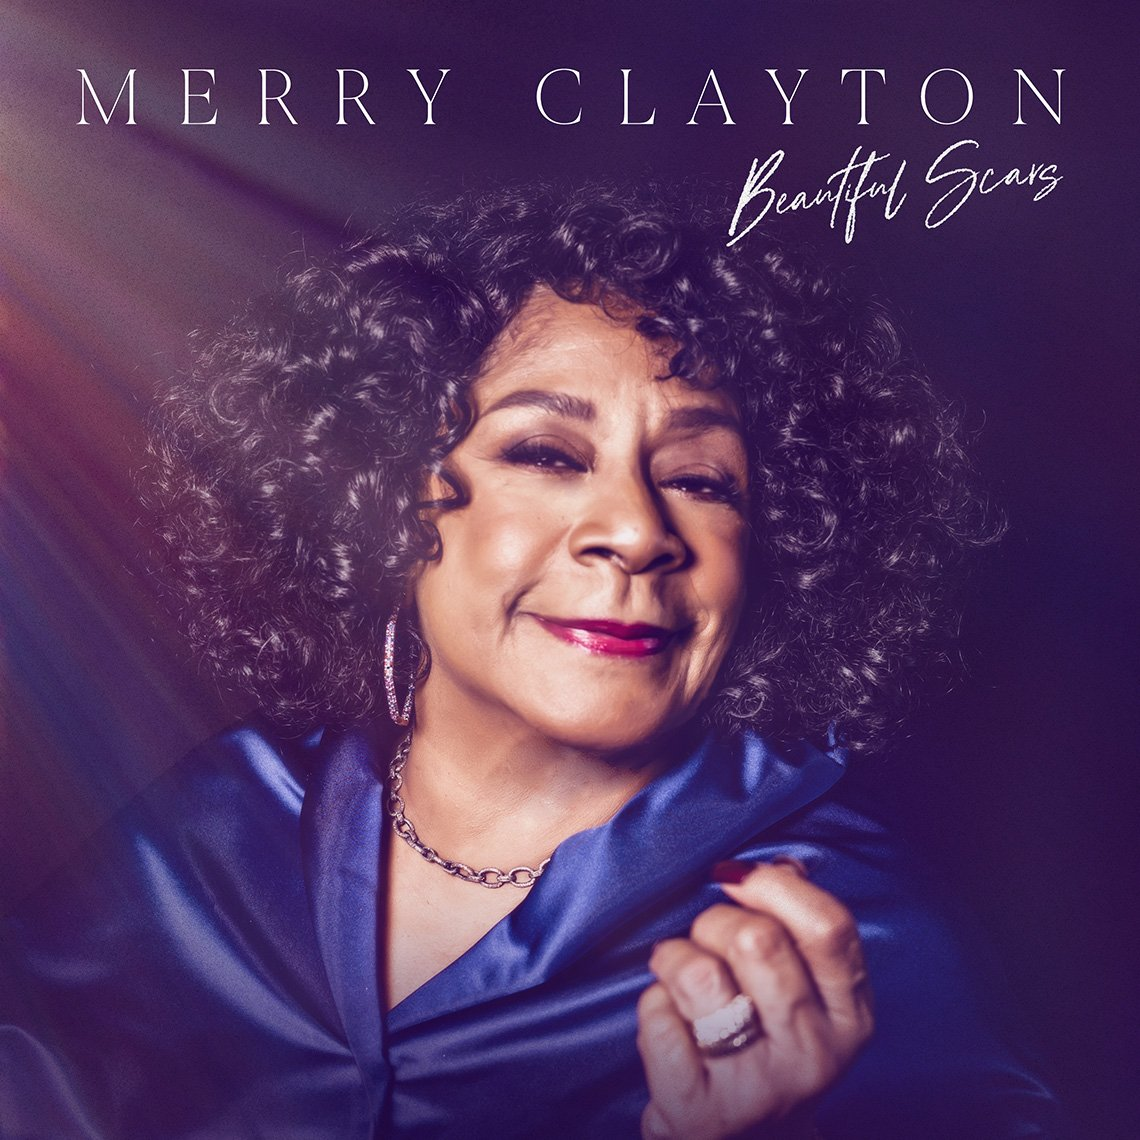 The cover art for Merry Clayton's album Beautiful Scars